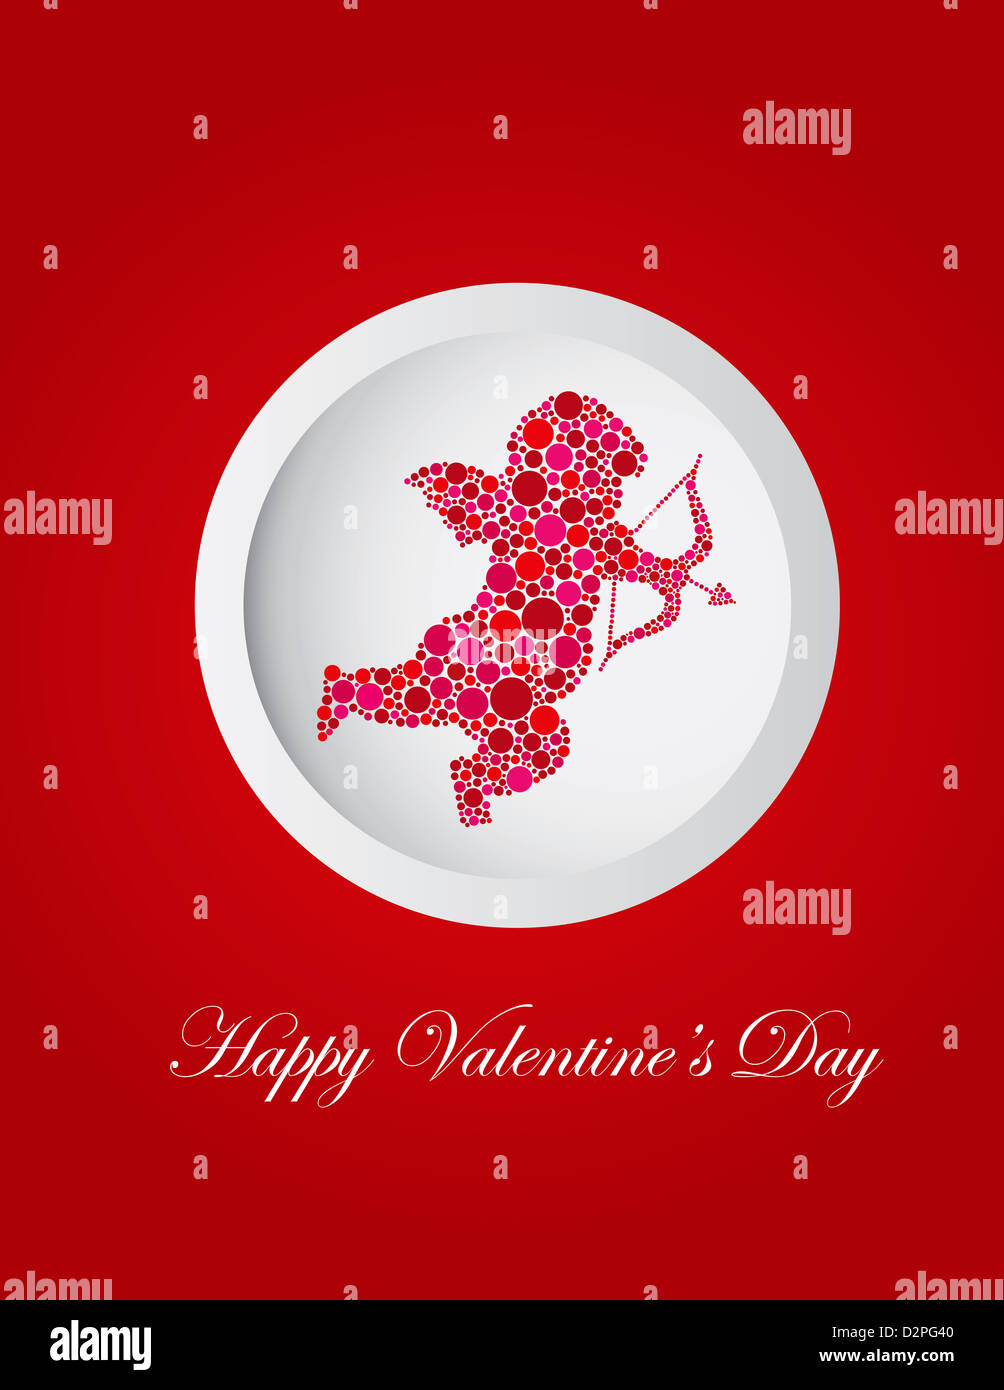 Happy Valentines Day Love Cupid With Bow And Arrow Silhouette Filled